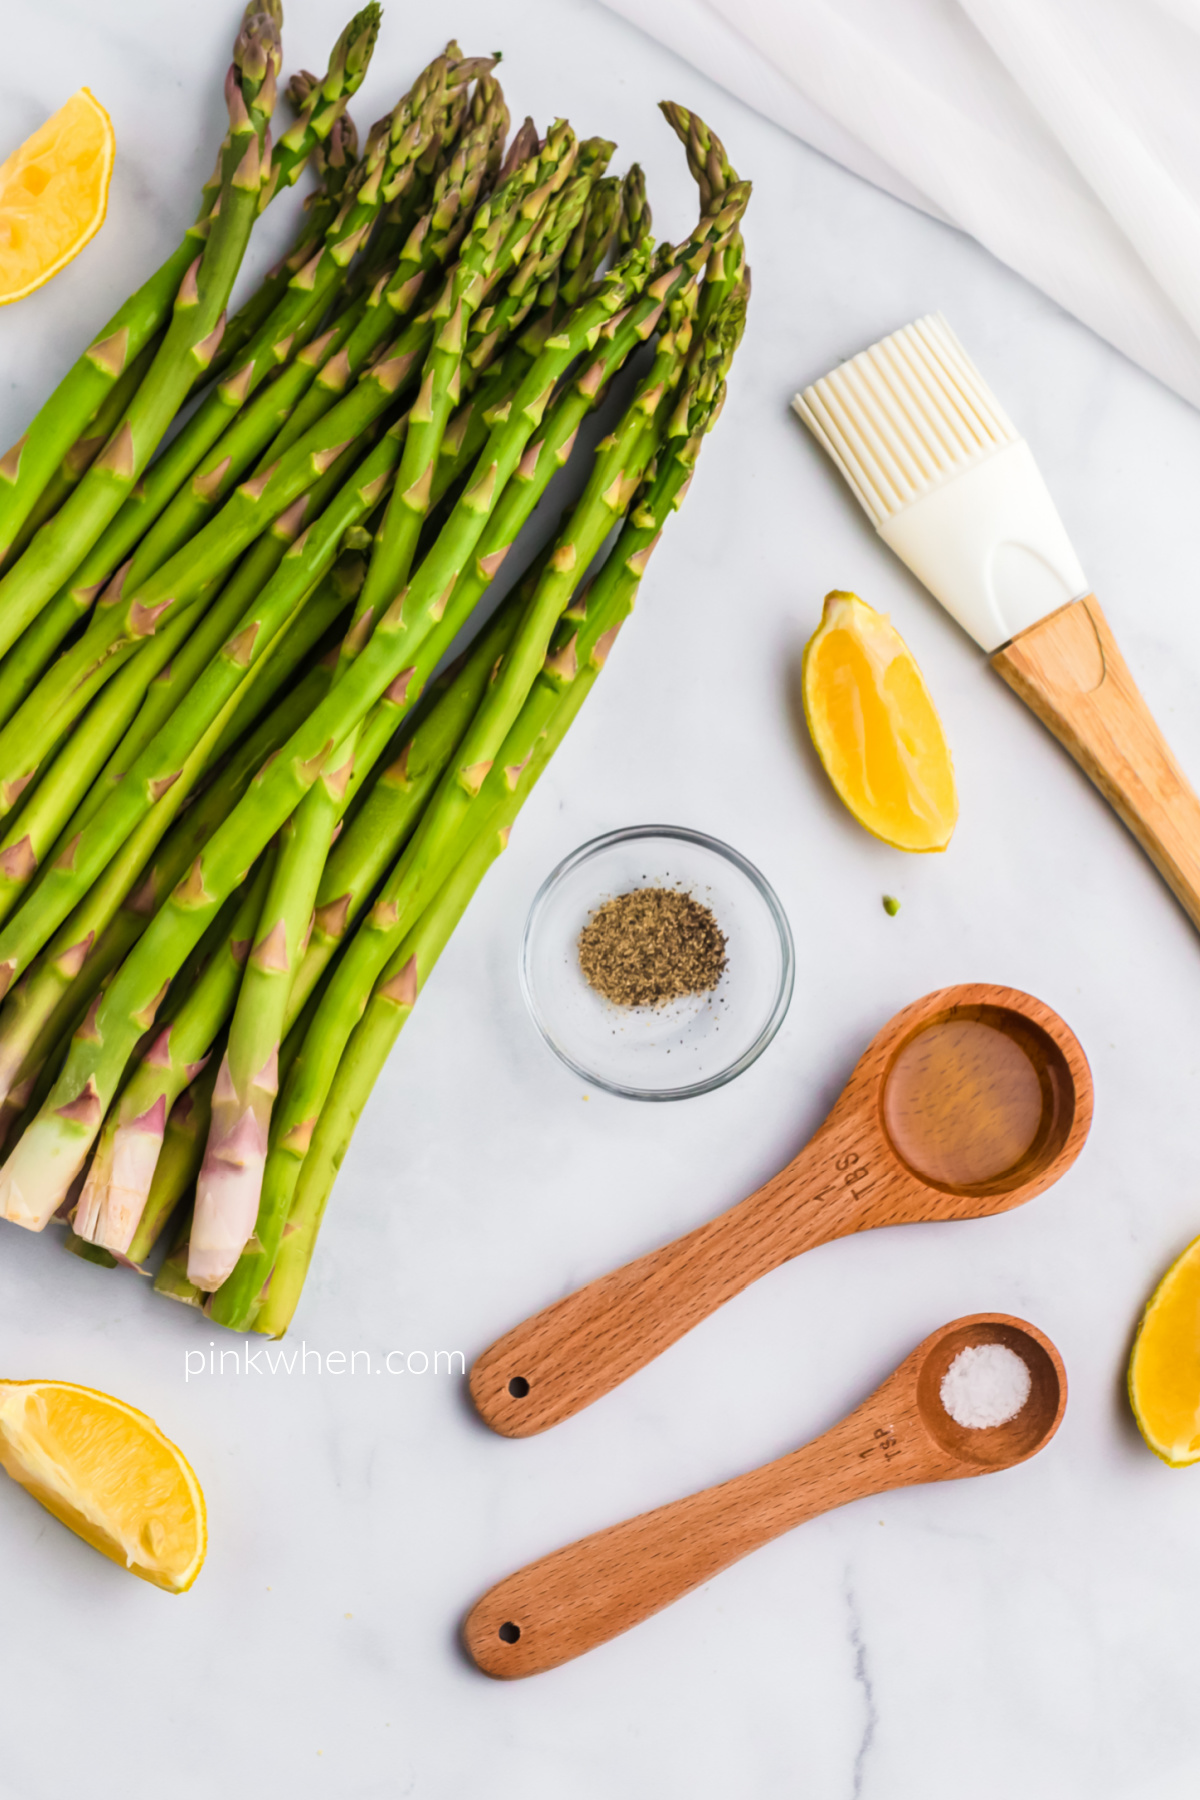 Ingredients needed to make asparagus in the air fryer.